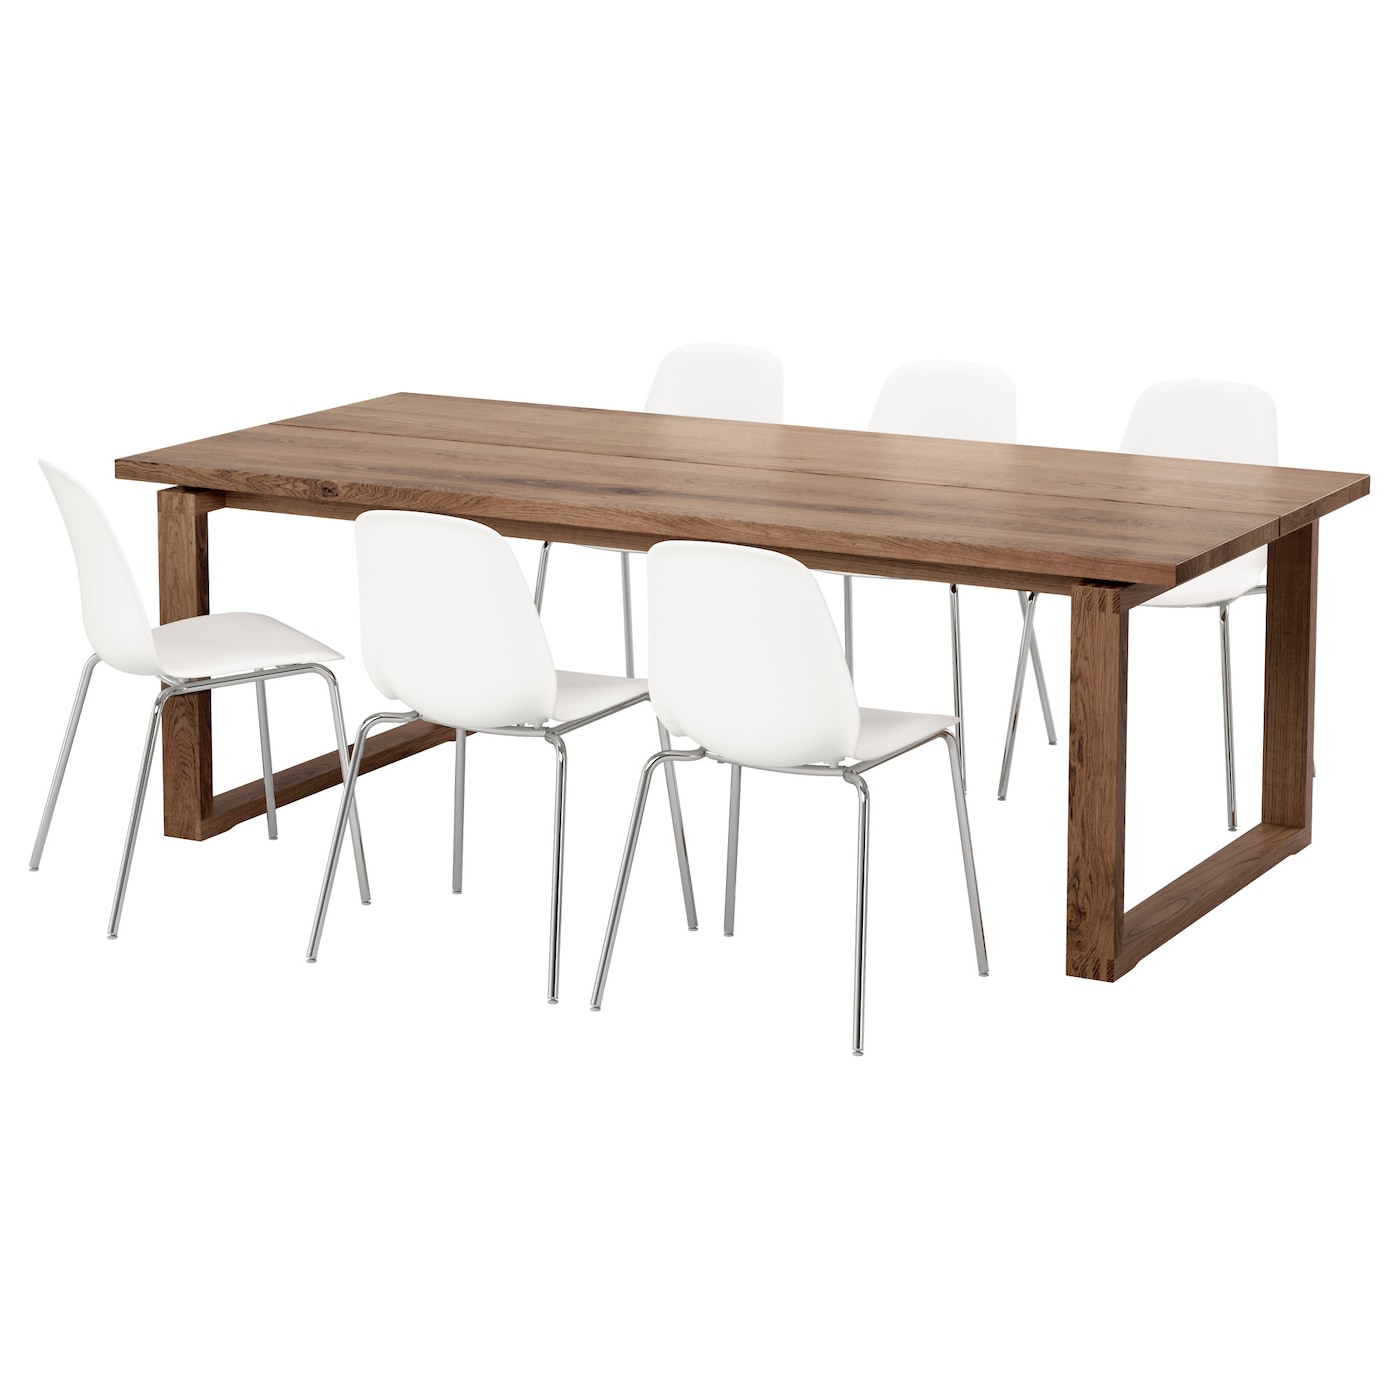 Dining Room Furniture Sets Ikea: LEIFARNE/MÖRBYLÅNGA Table And 6 Chairs Brown/white 220 X